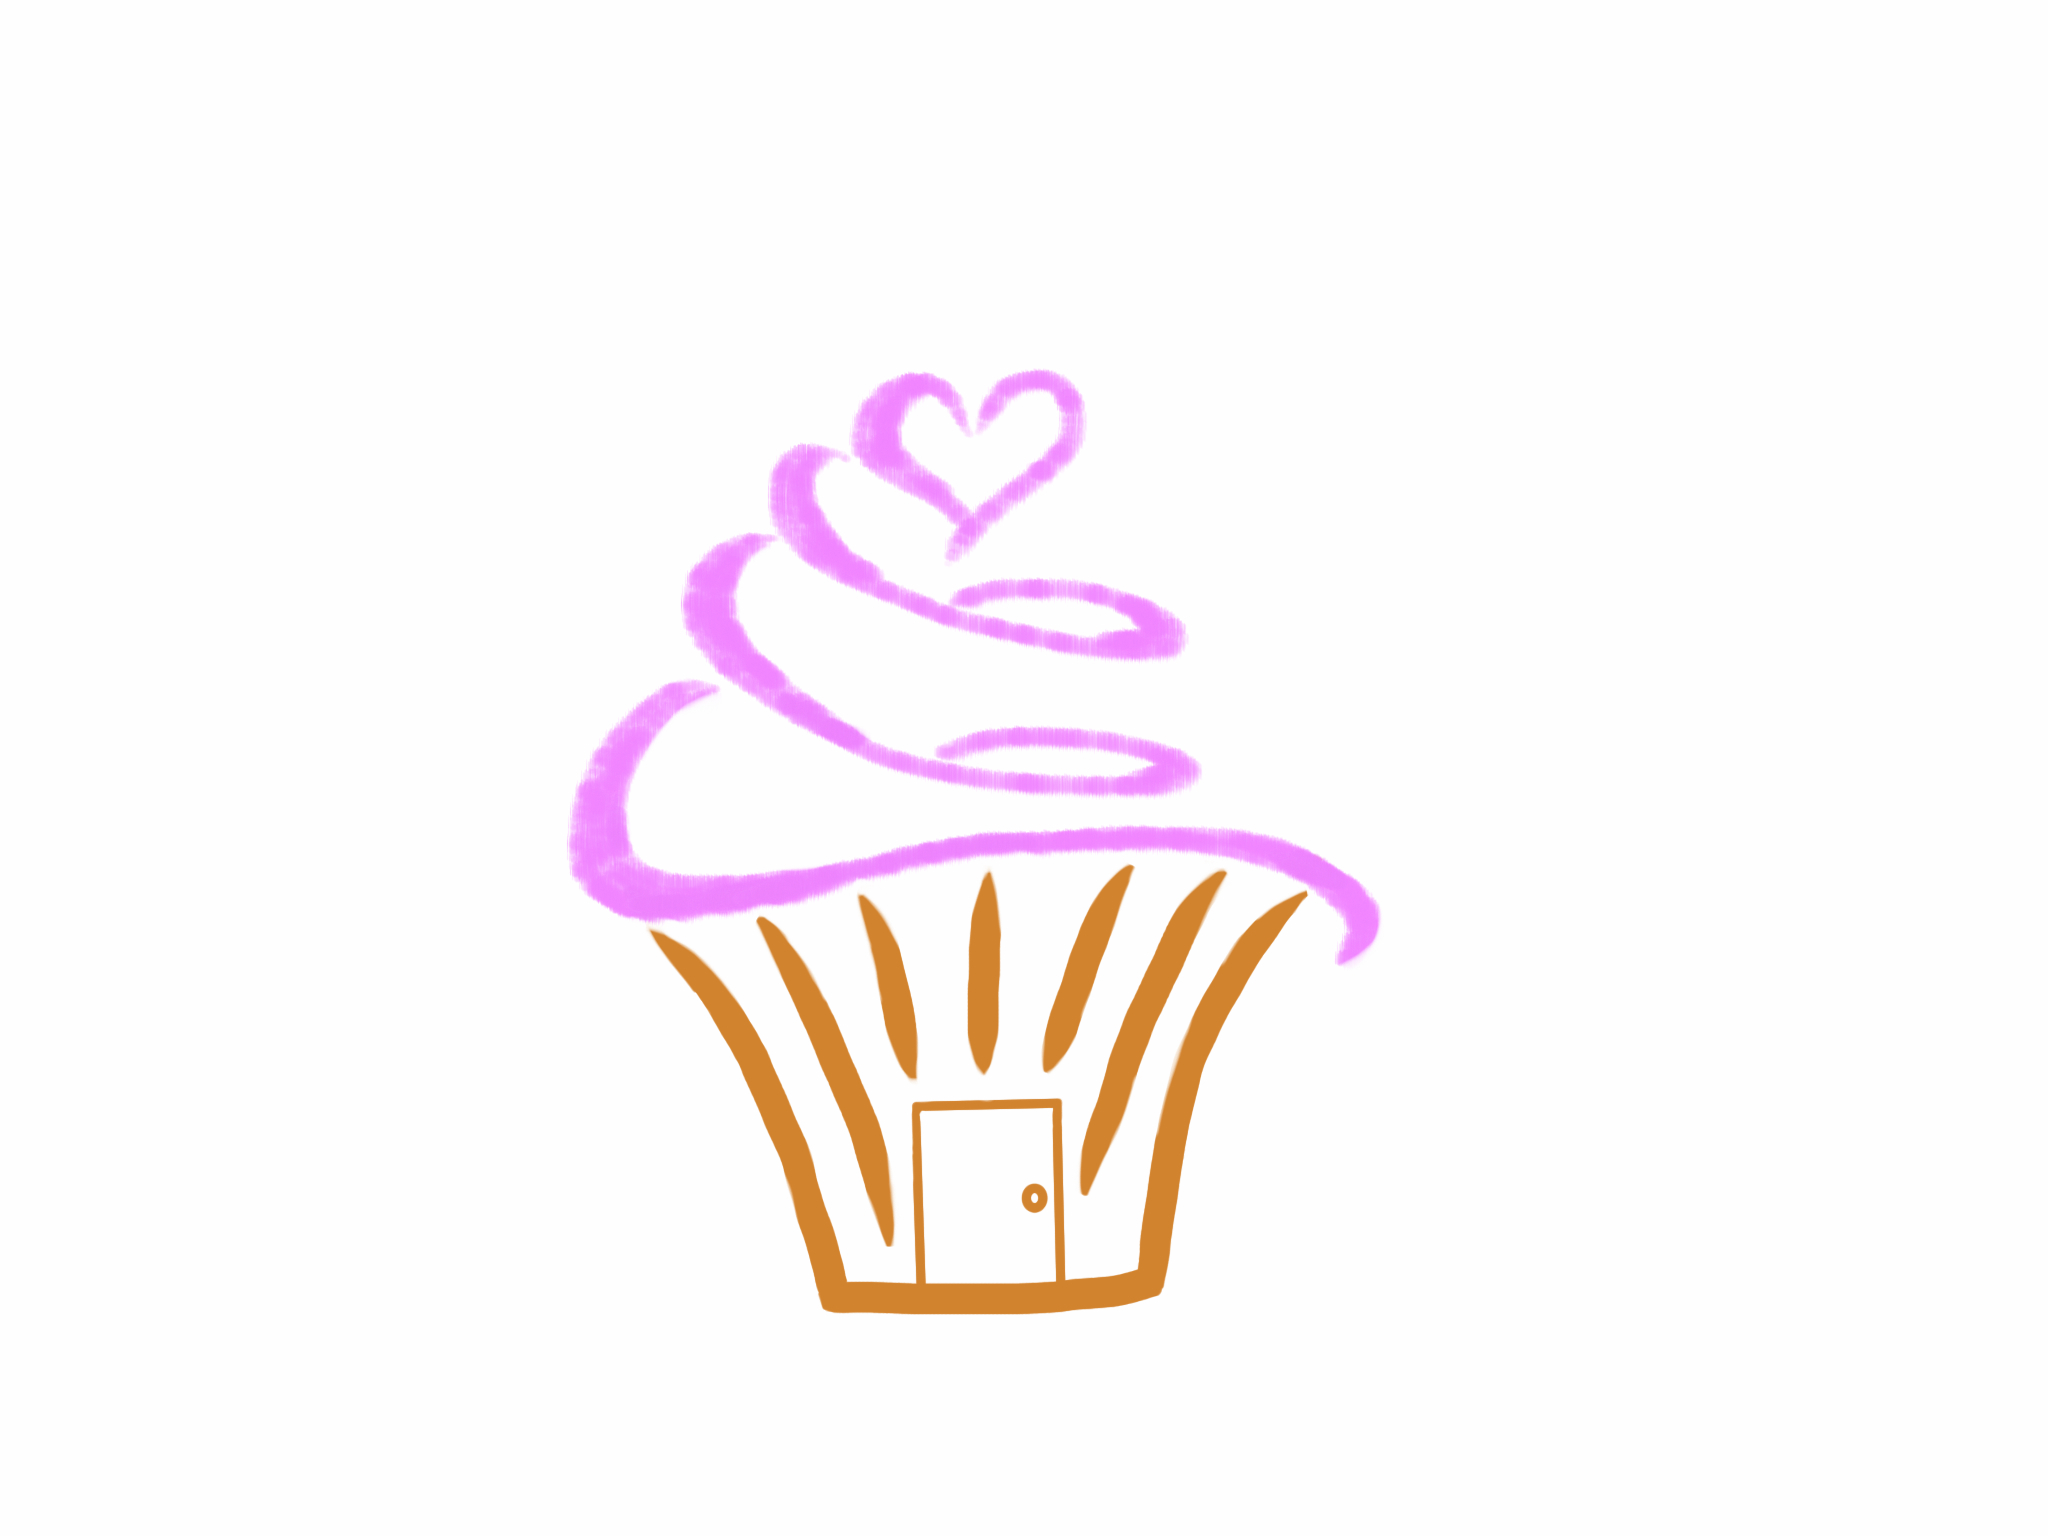 heart and home cupcakes logo by davwin on deviantart